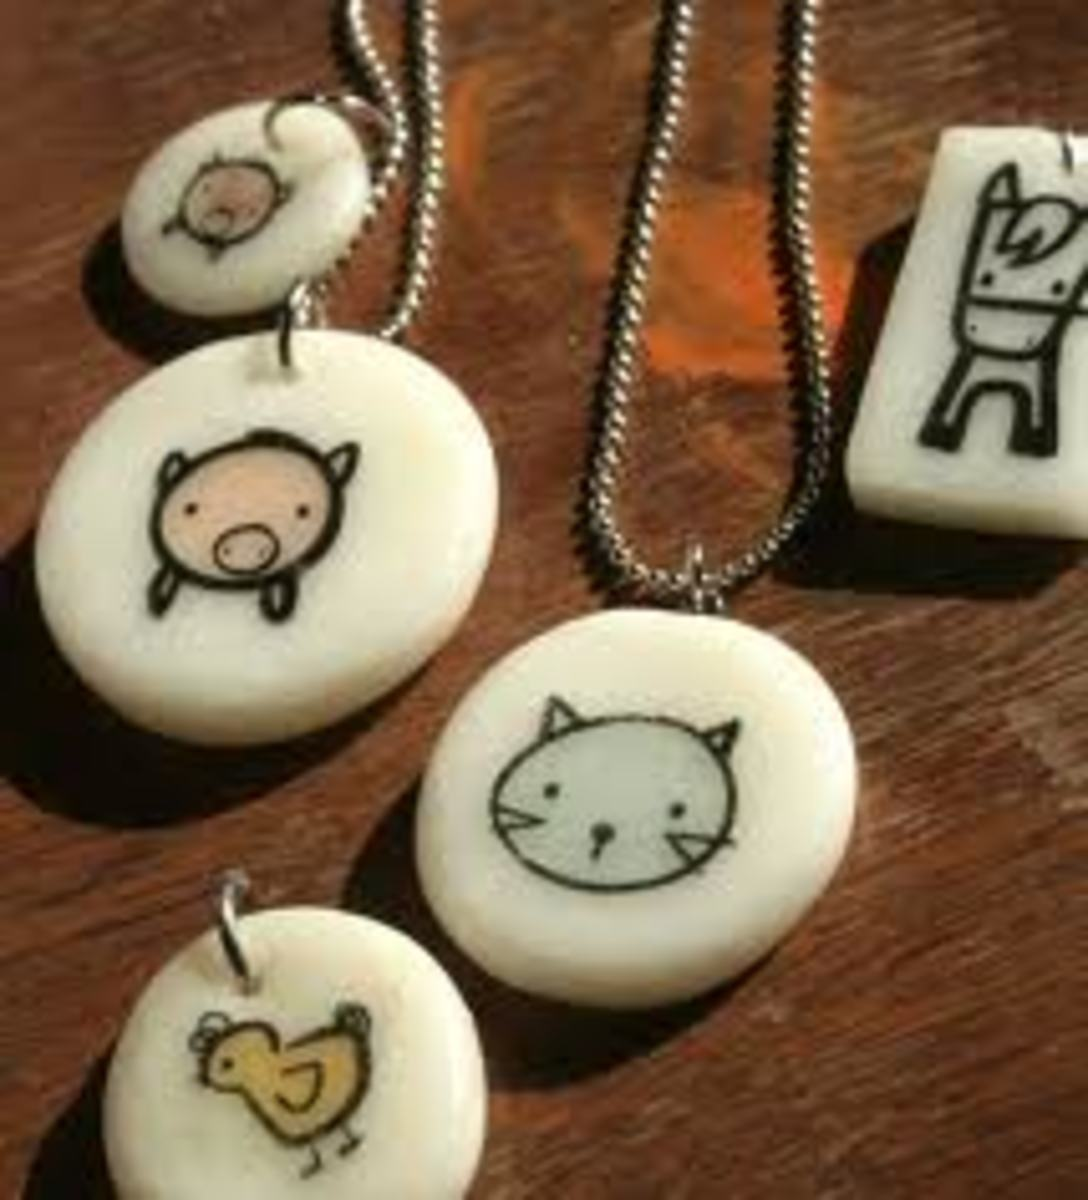 P0LYMER CLAY PENDANT NECKLACES ALSO MAKE GREAT GIFTS!